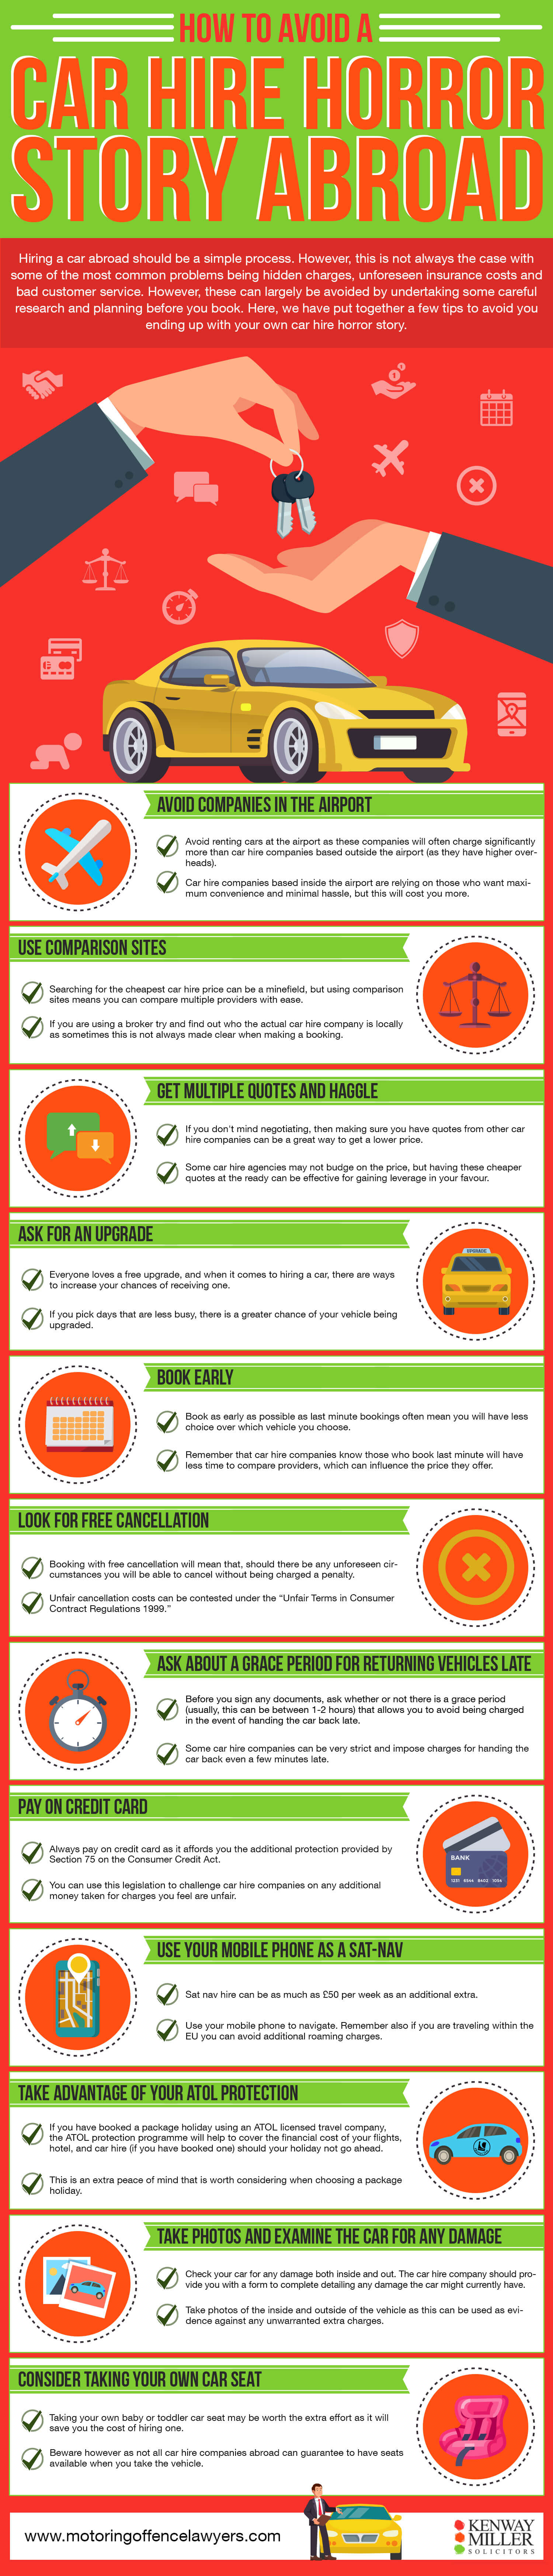 How-To-Avoid-a-Car-Hire-Horror-Story-Abroad infographic motoringoffencelawyers.com